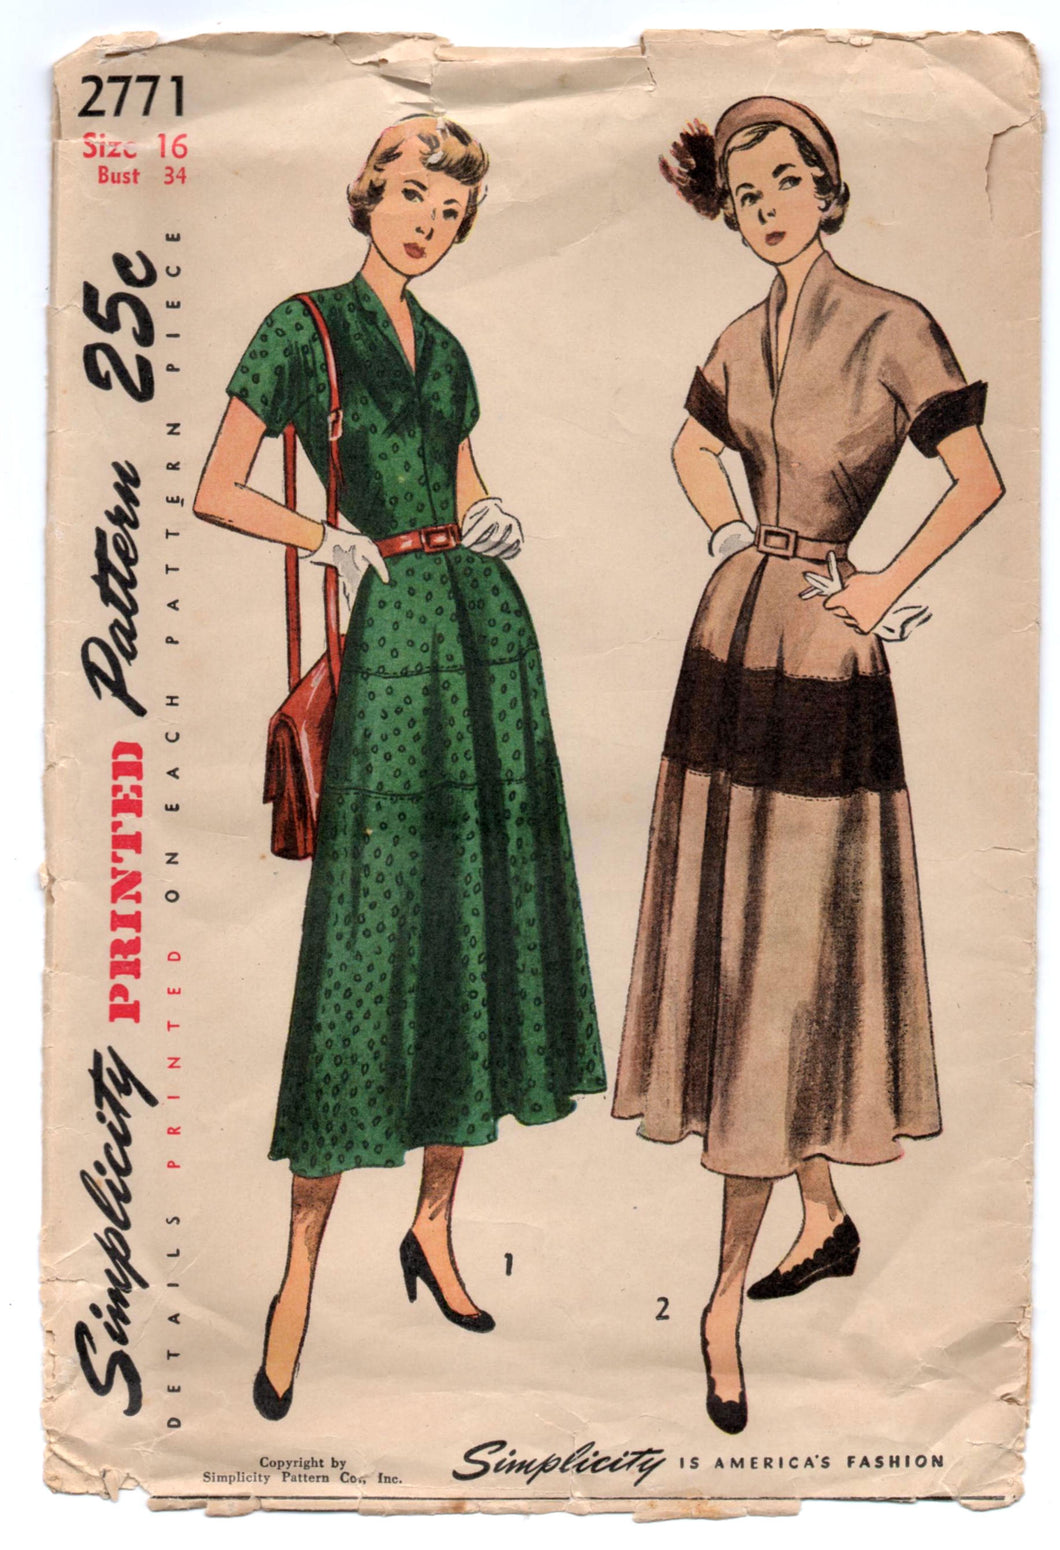 1940's Simplicity One Piece Dress with V neck and tiered Skirt Pattern - Bust 34